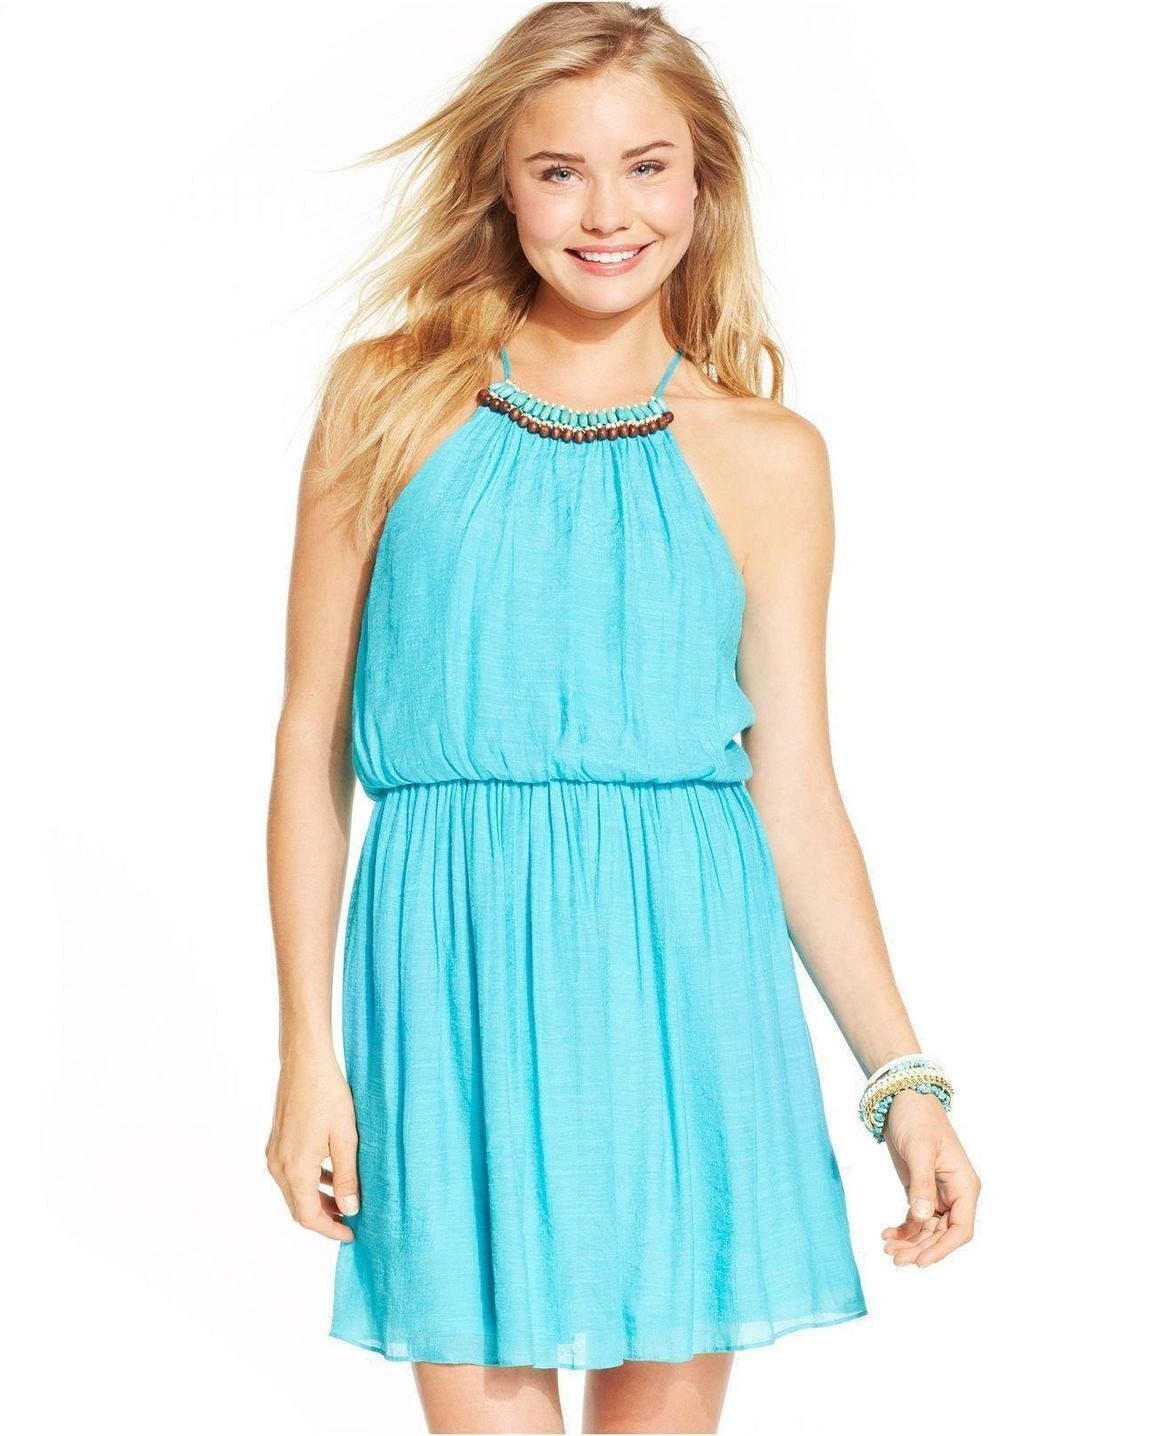 As U Wish Juniors\' Blouson Dress http://picvpic.com/women-dresses ...